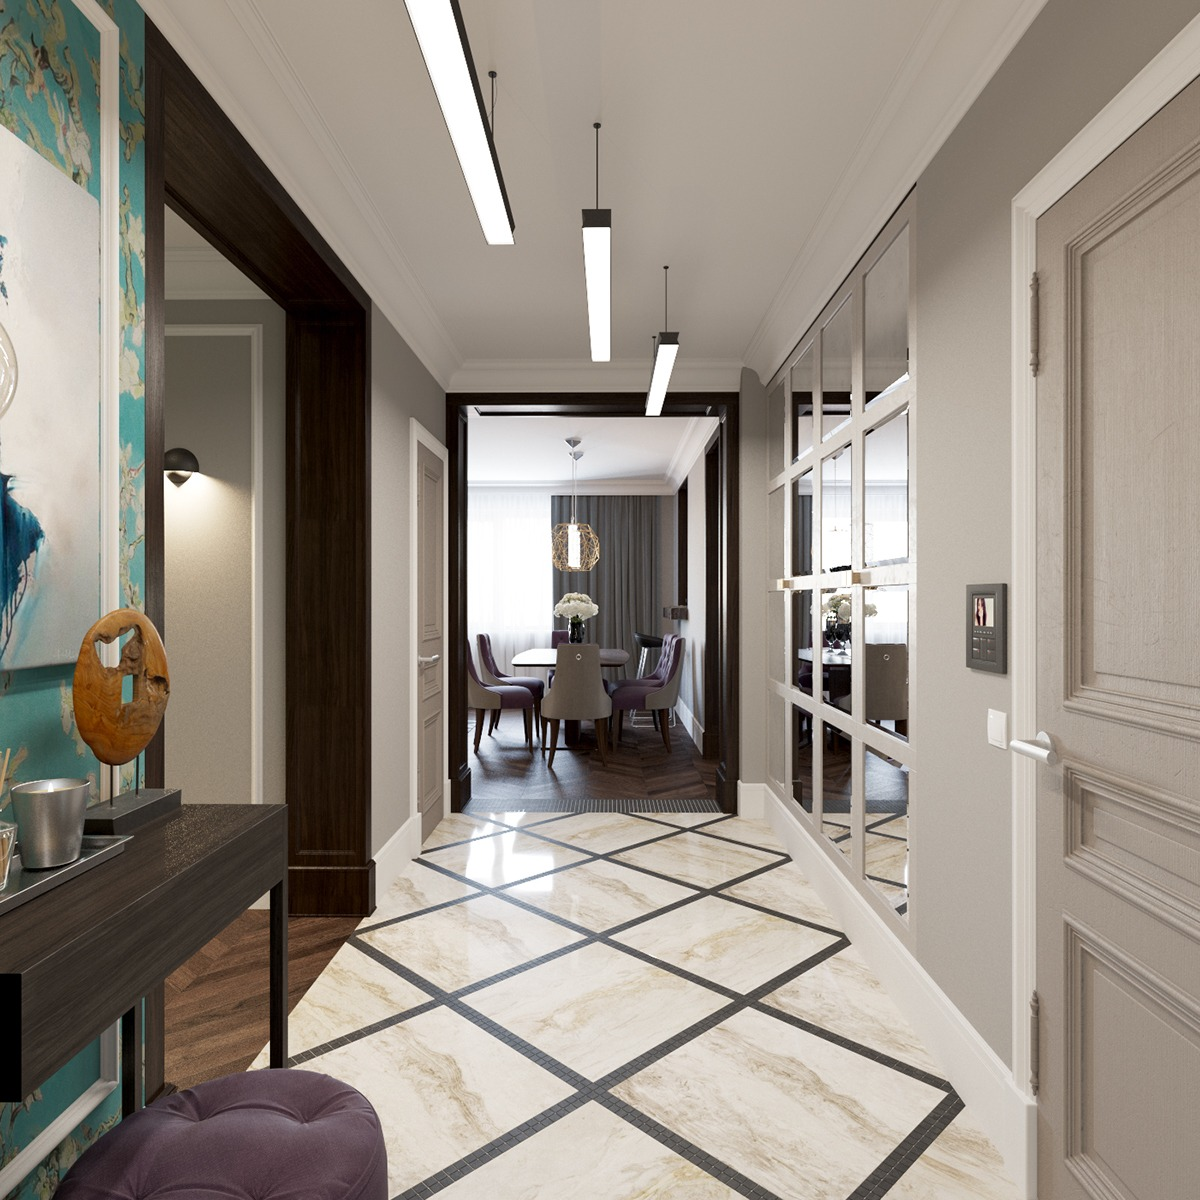 2 beautiful home interiors in art deco style for The interior deco